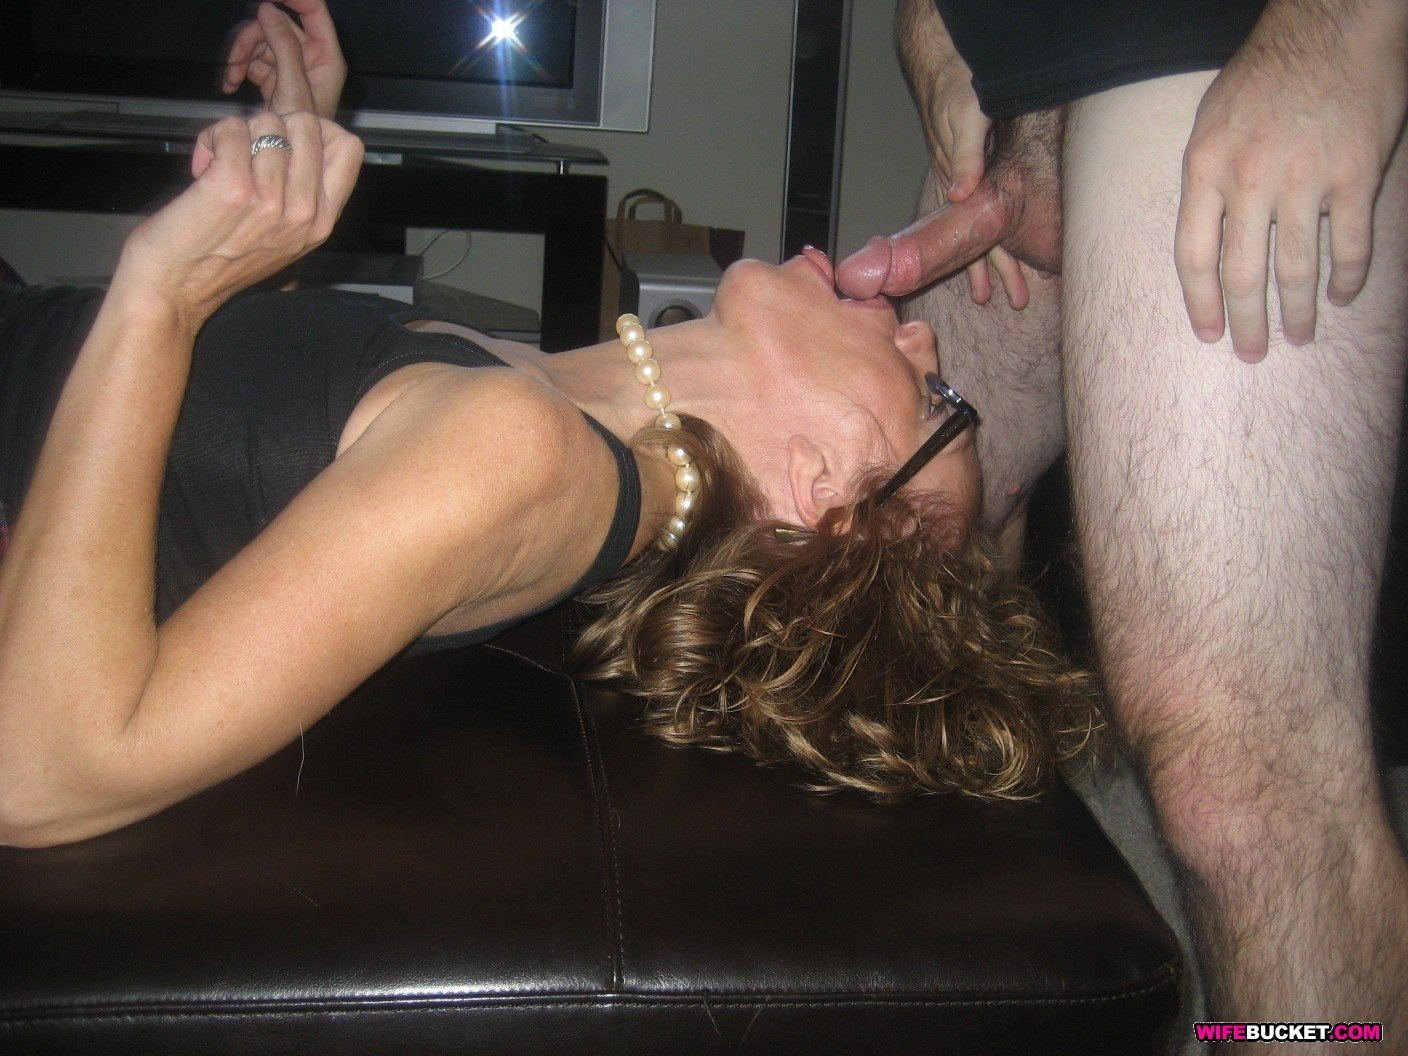 Sexy women with big boobs in bikinis Eating pussy gle Amateur fuck secretary